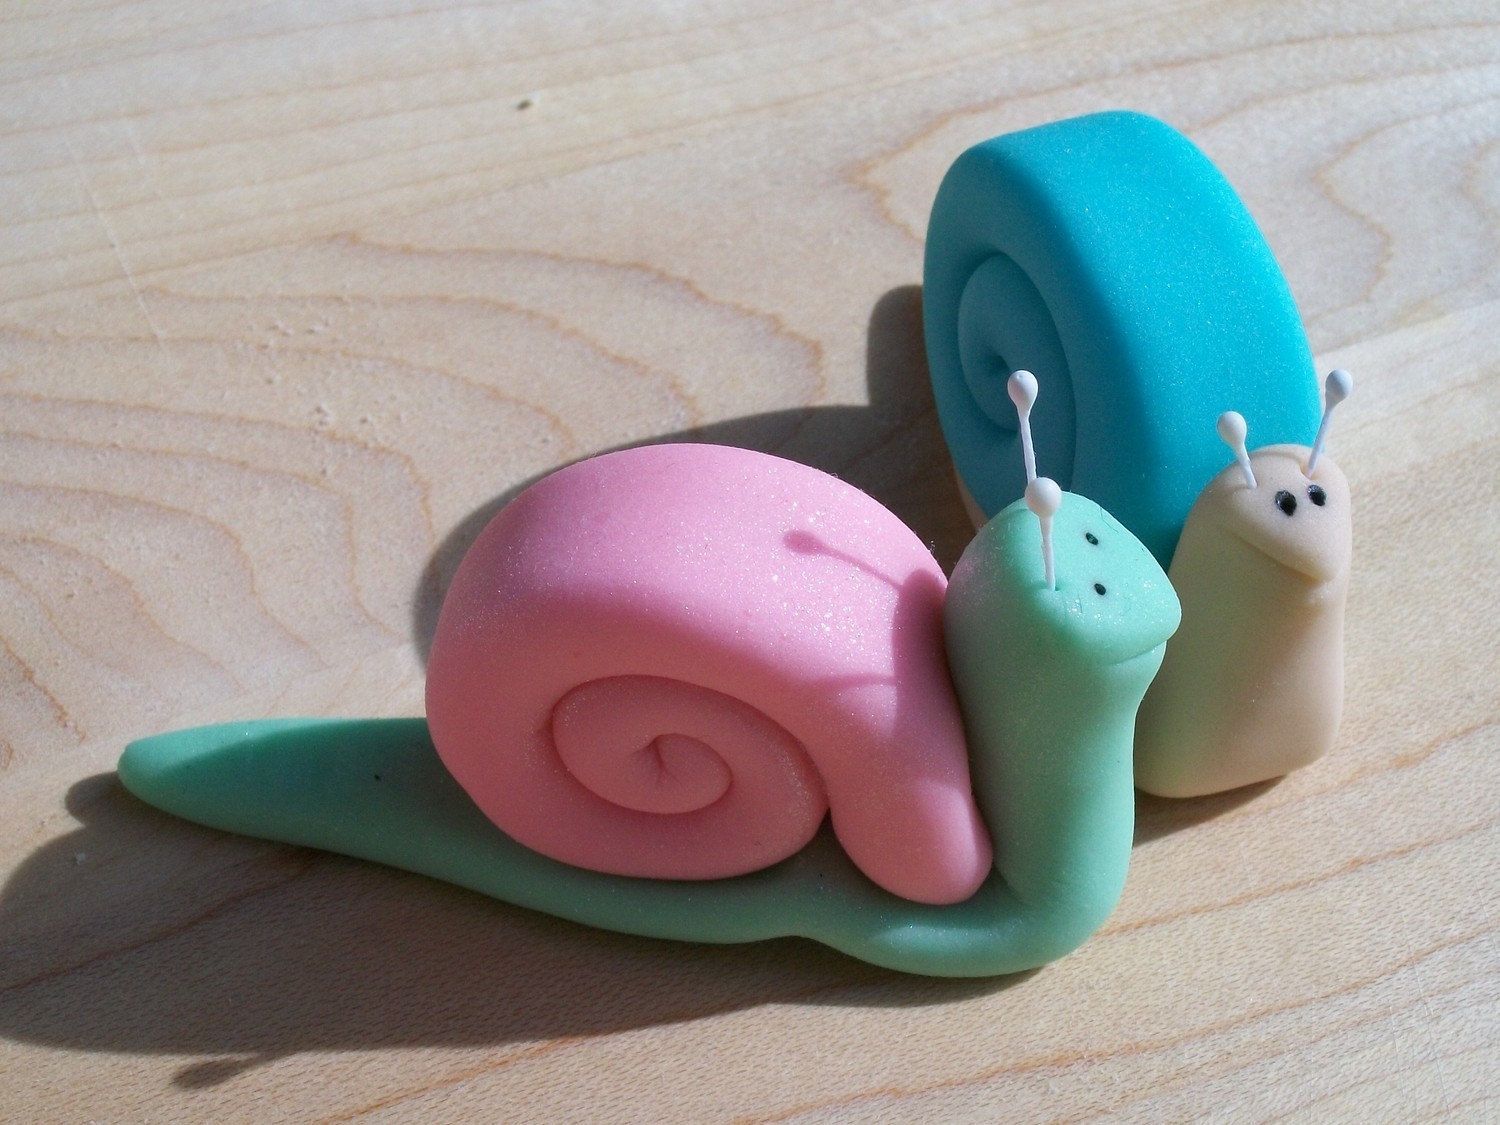 Fondant Cake Decorations Uk : Fondant Snail Cake and Cupcake Toppers Set of 12 by ...